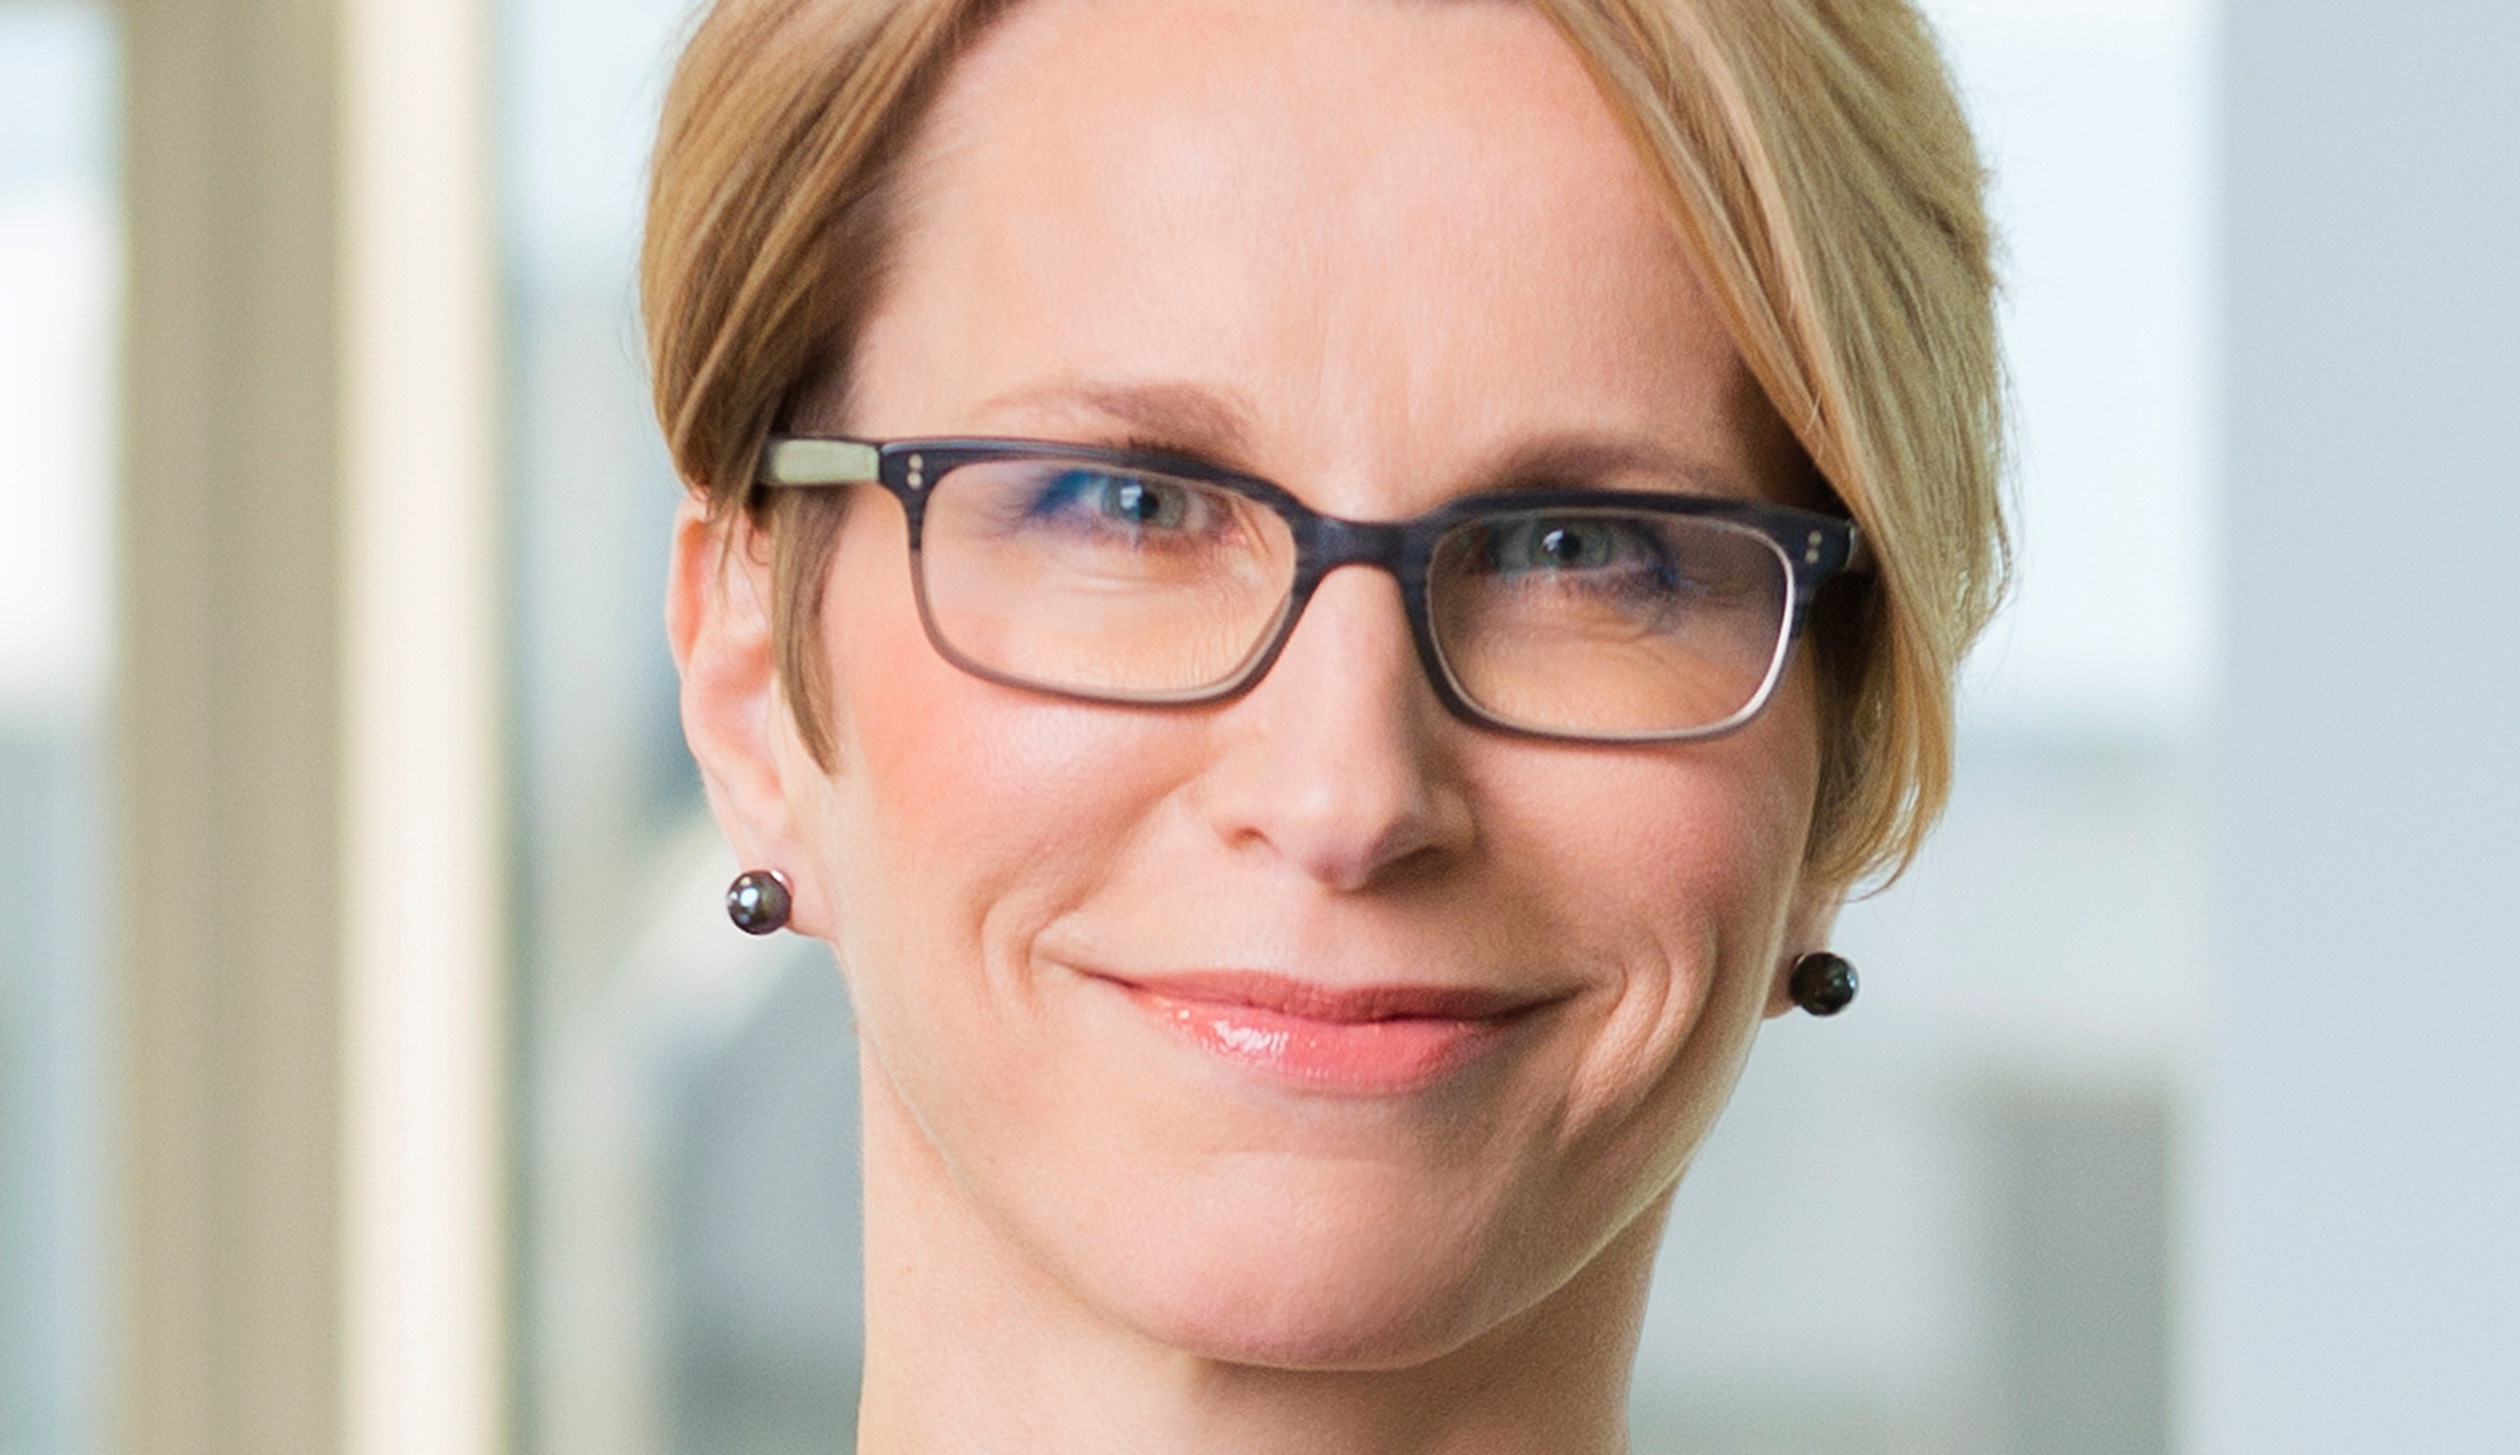 The news is a boon to incoming Glaxo CEO Emma Walmsley